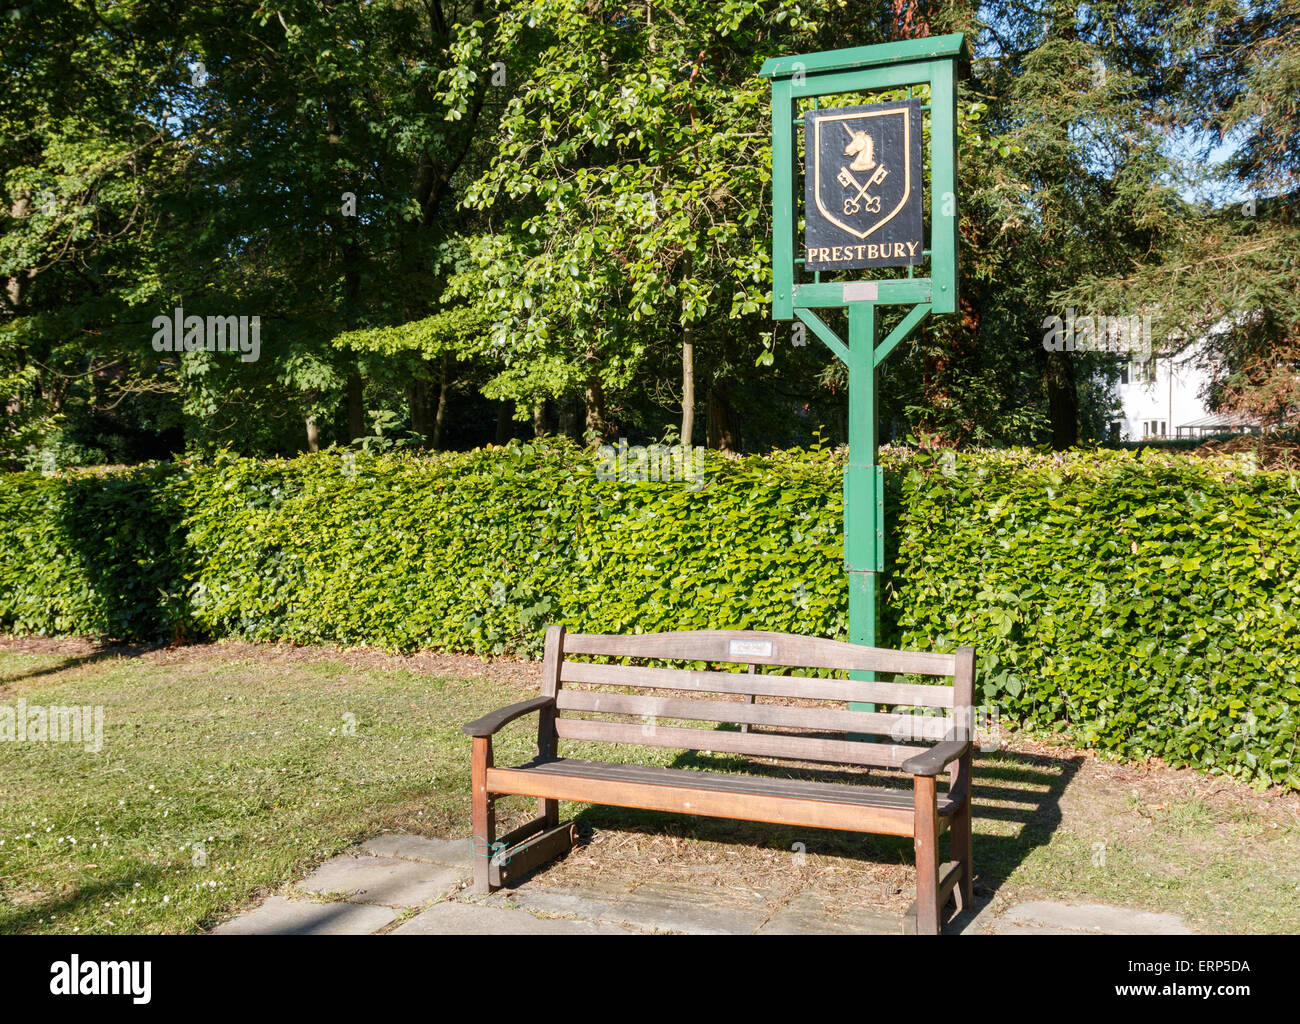 Prestbury sign with coat of arms. Cheshire village, - Stock Image